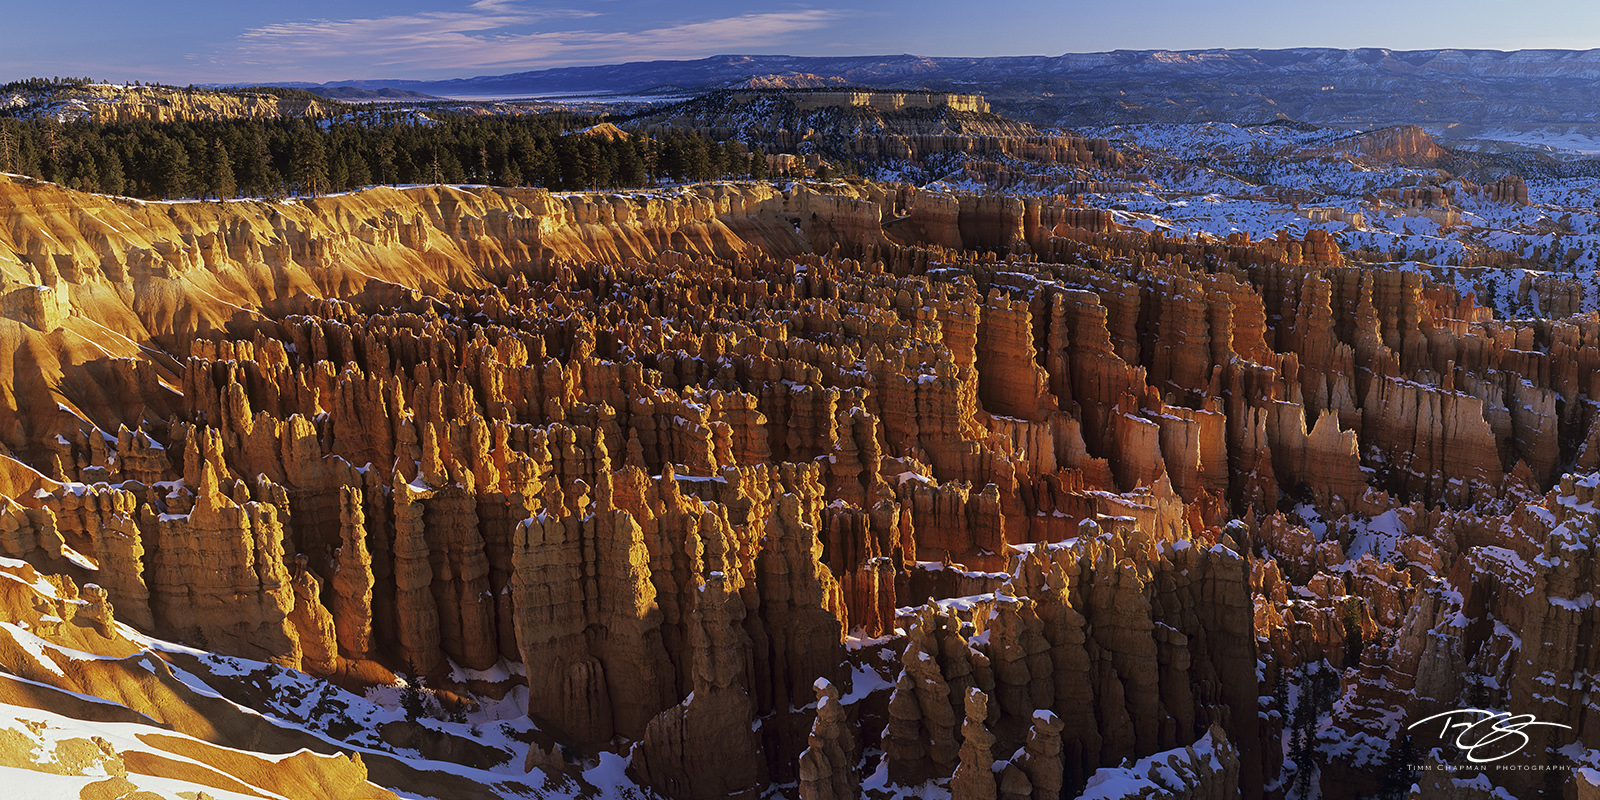 The first light of day casts a warm glow across the Silent City at Bryce Canyon